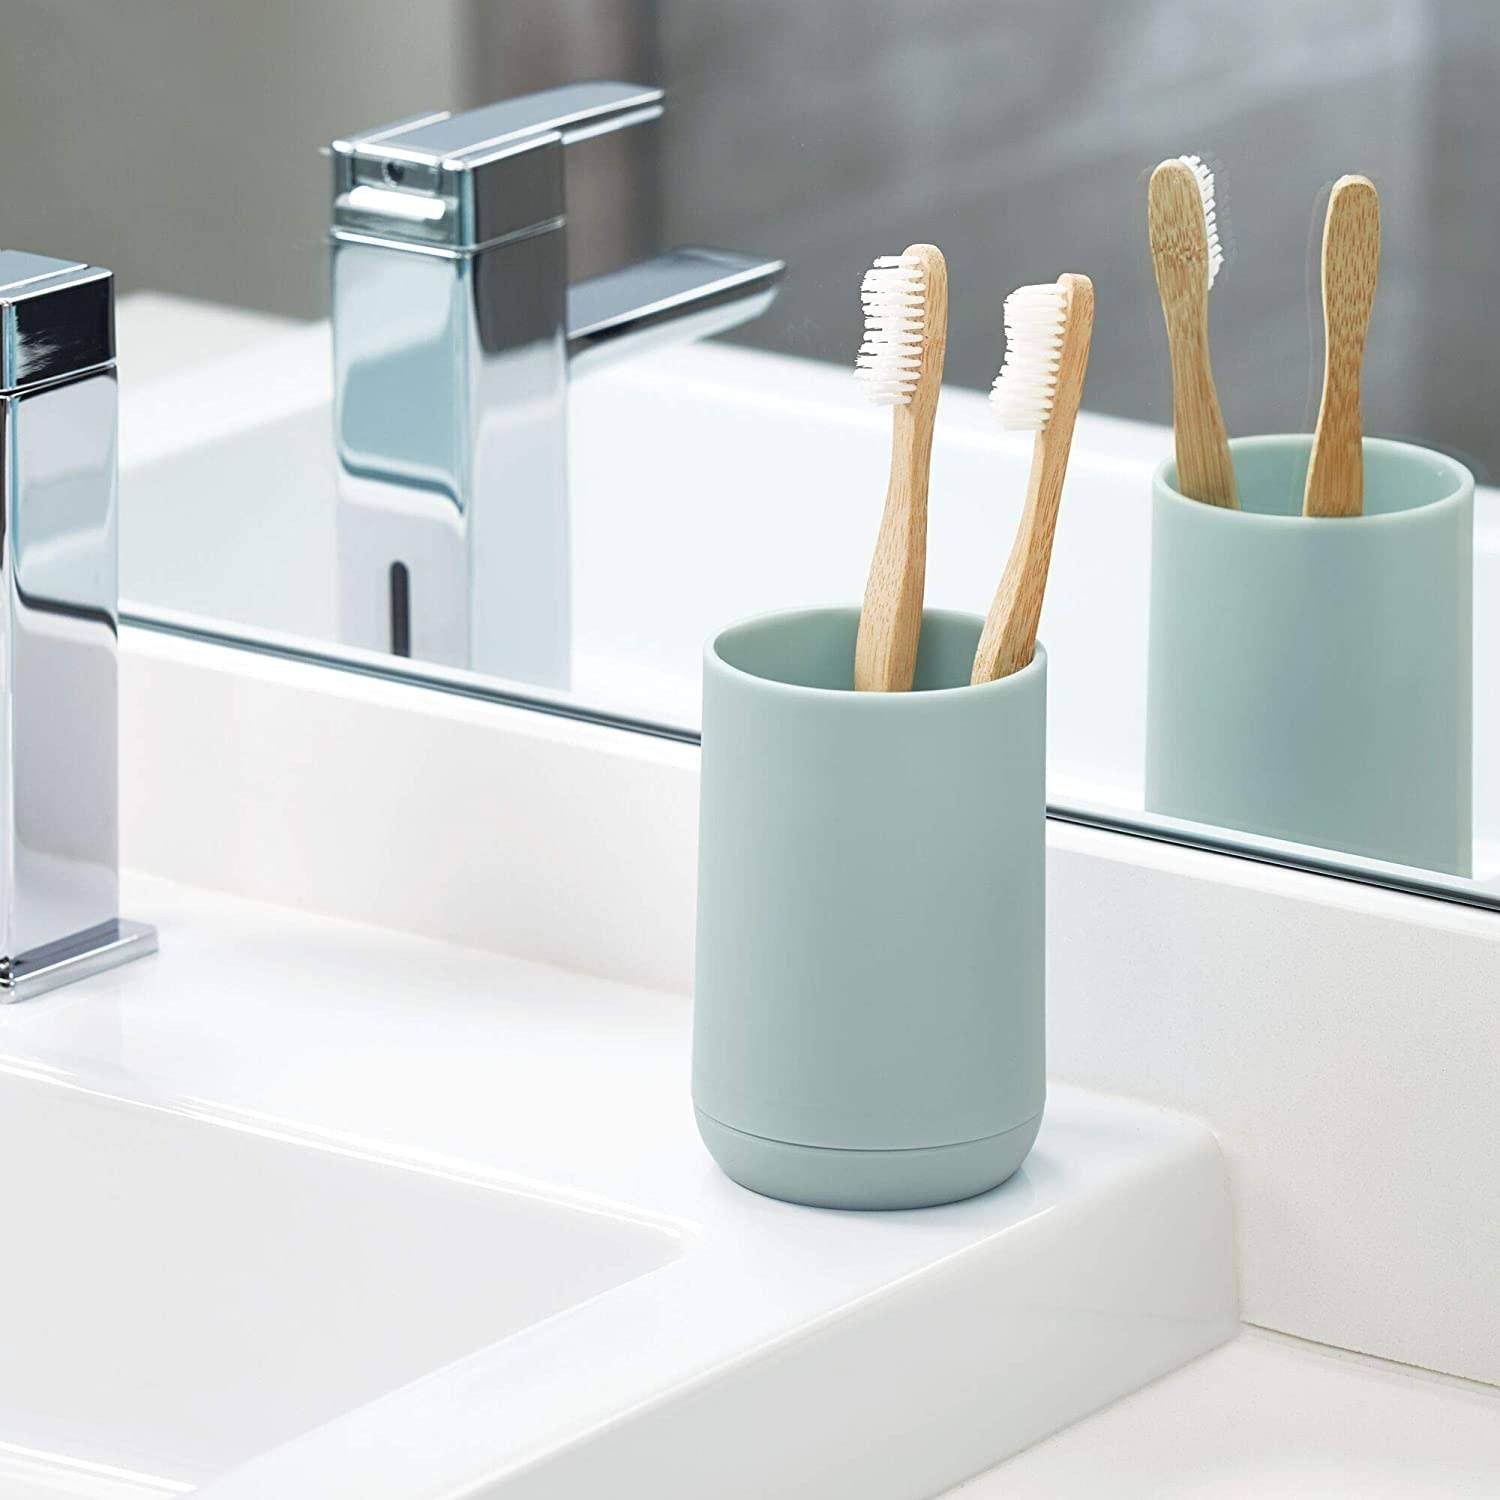 The toothbrush holder on a counter with two bamboo toothbrushes in it